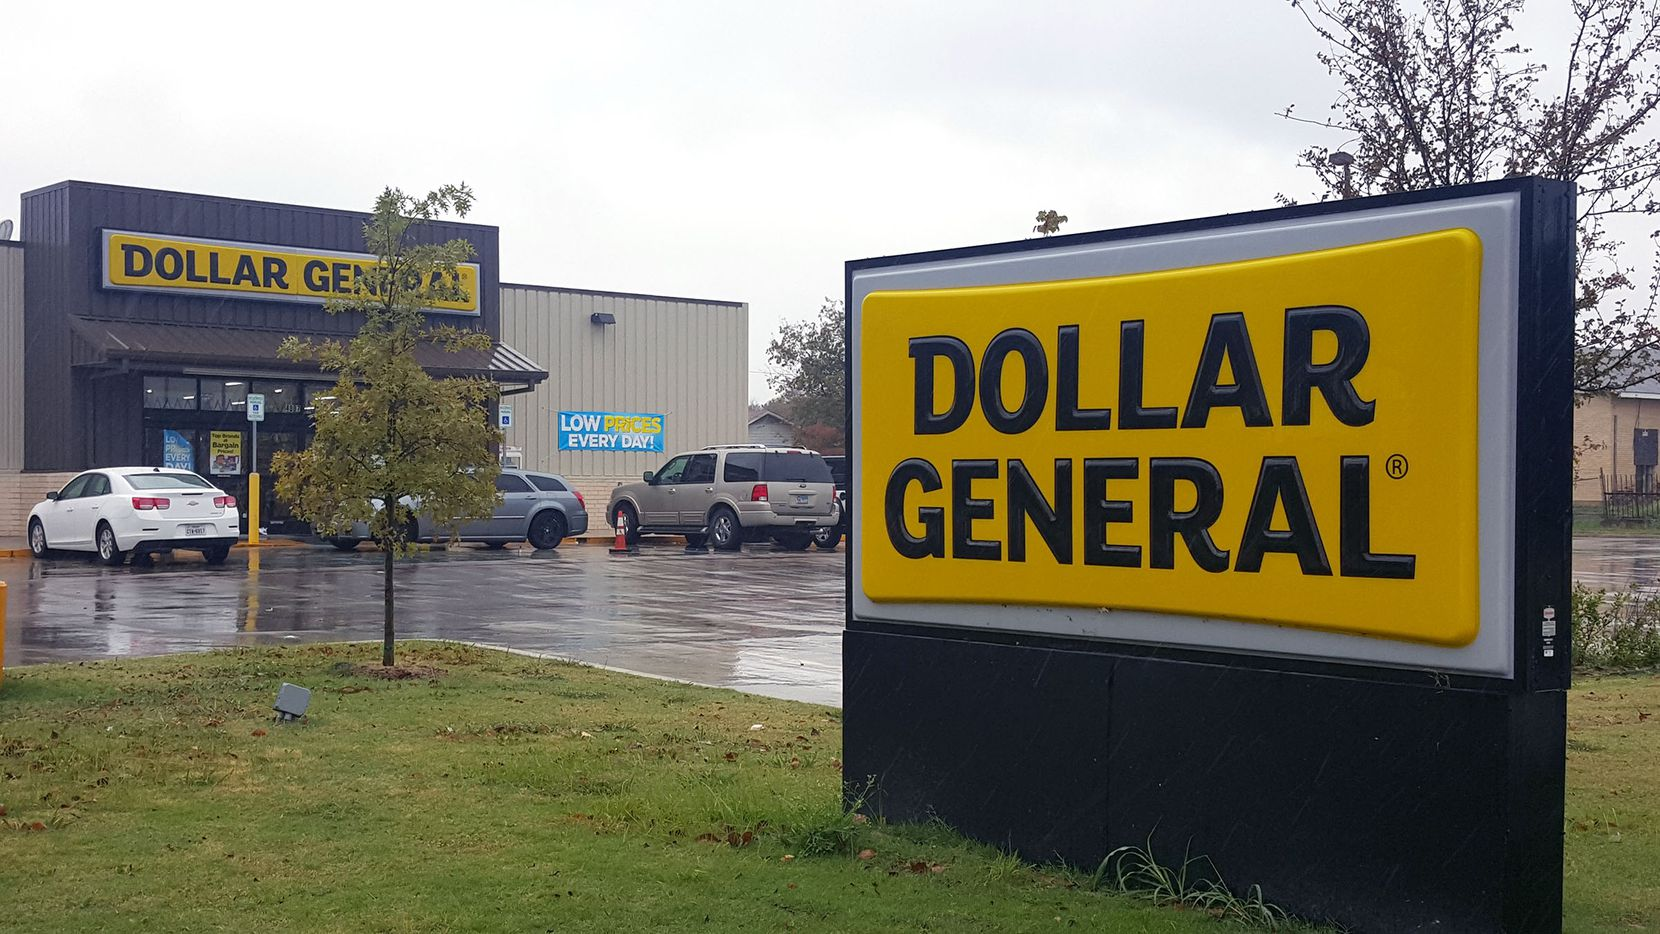 The Dollar General store at 4807 Sunnyvale in Dallas was robbed and clerk Gabrielle Simmons was shot and killed Monday, Nov. 6, 2017. Photographed Wednesday, Nov. 8, 2017.